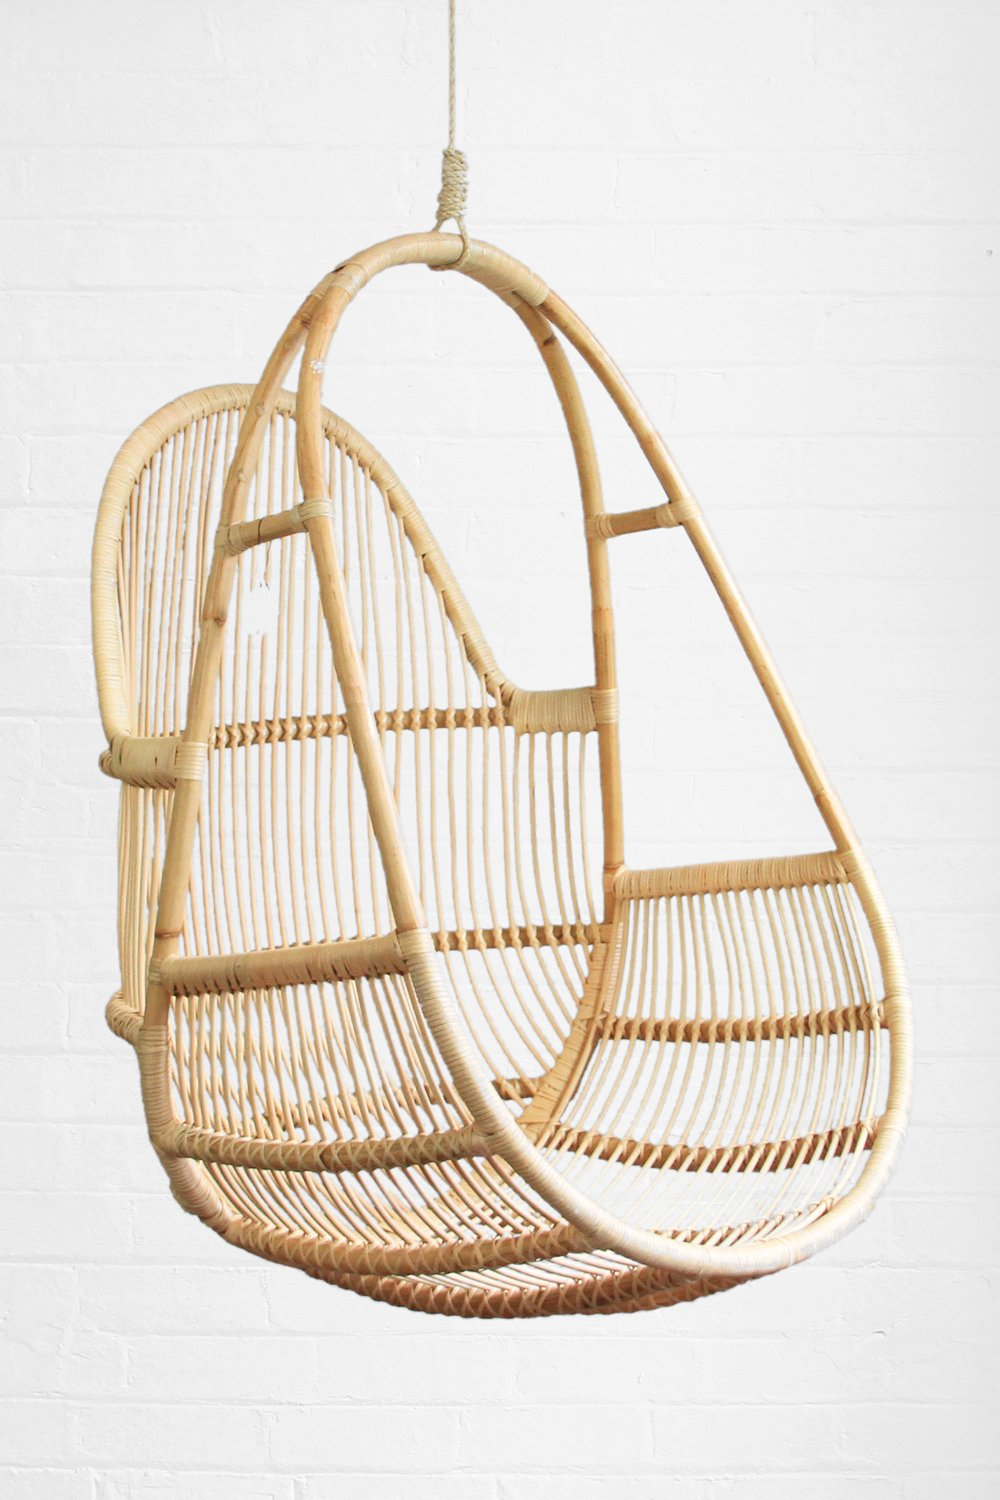 Buy Sanbasics Rattan Single Hanging Chair | Buy Sanbasics Homewares